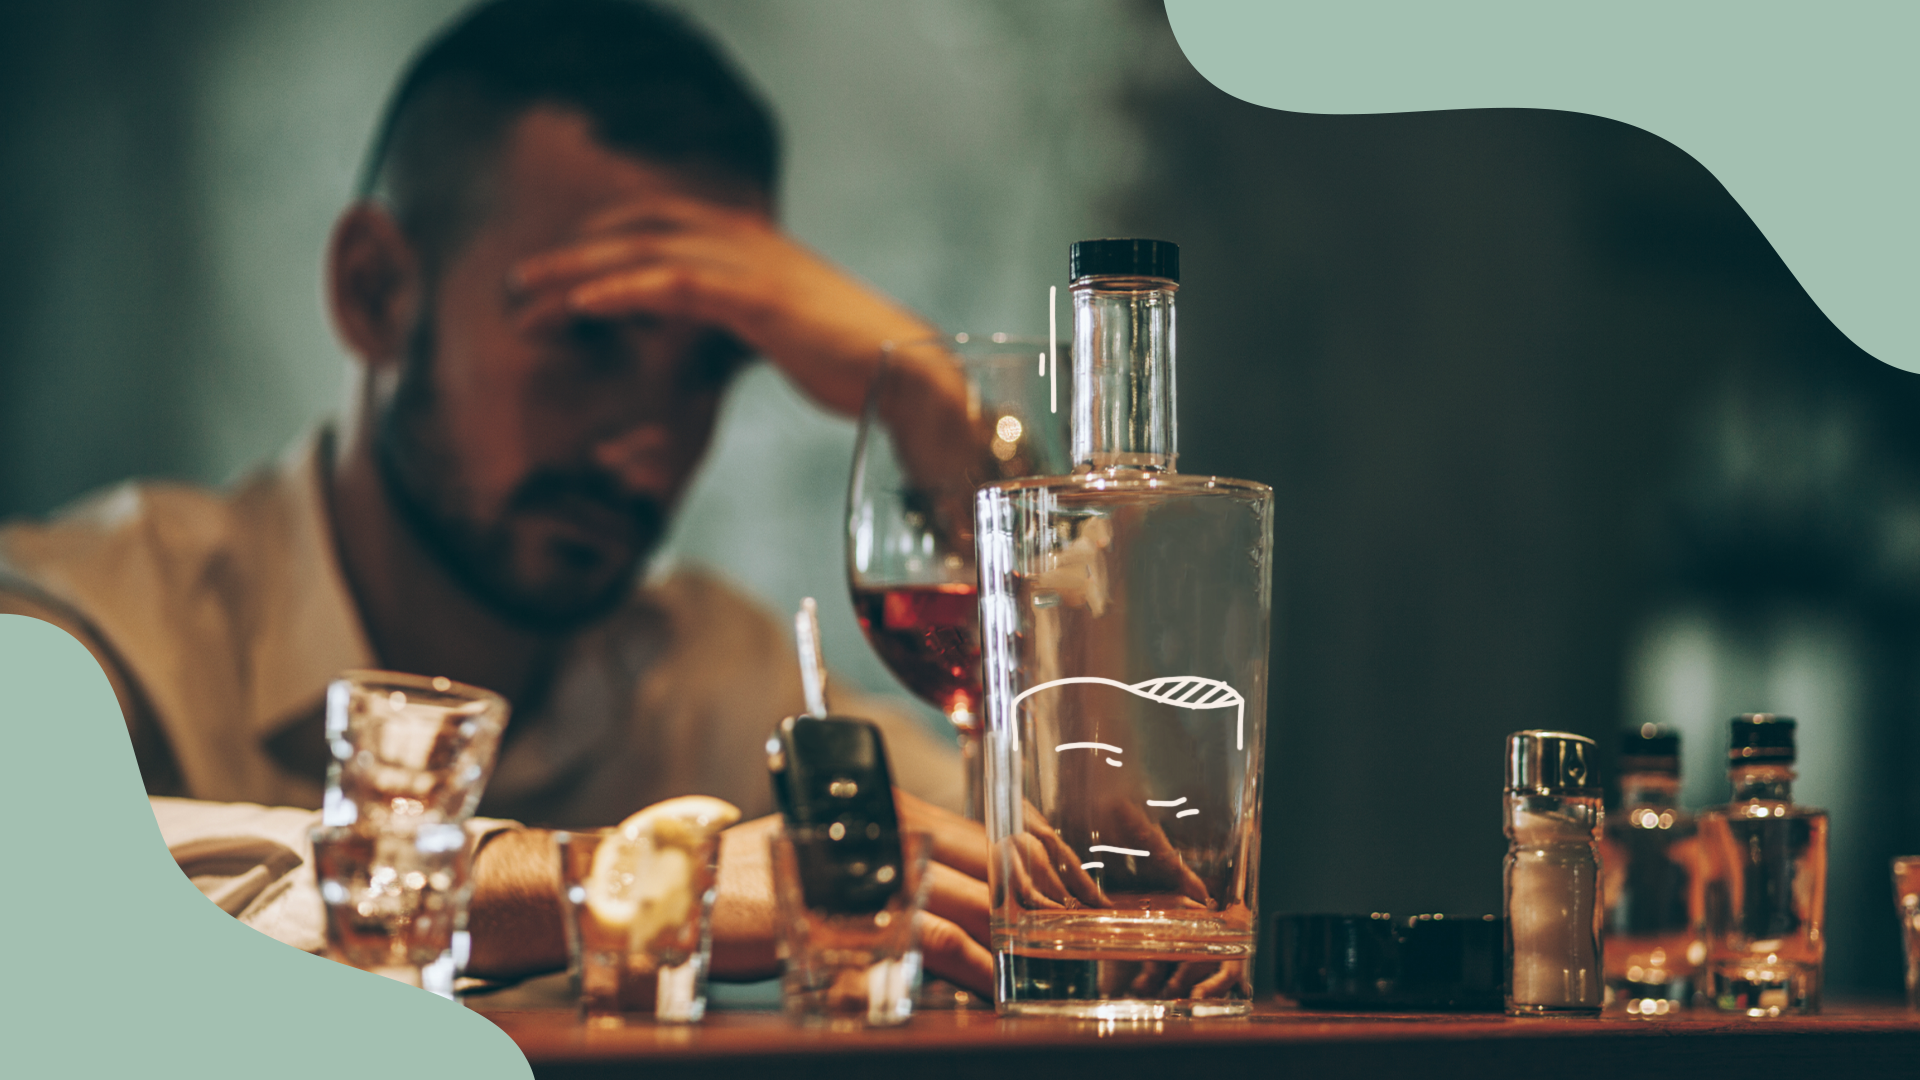 HOW TO ASSIST ADULT CHILDREN SUFFERING FROM ALCOHOL/DRUG ADDICTION